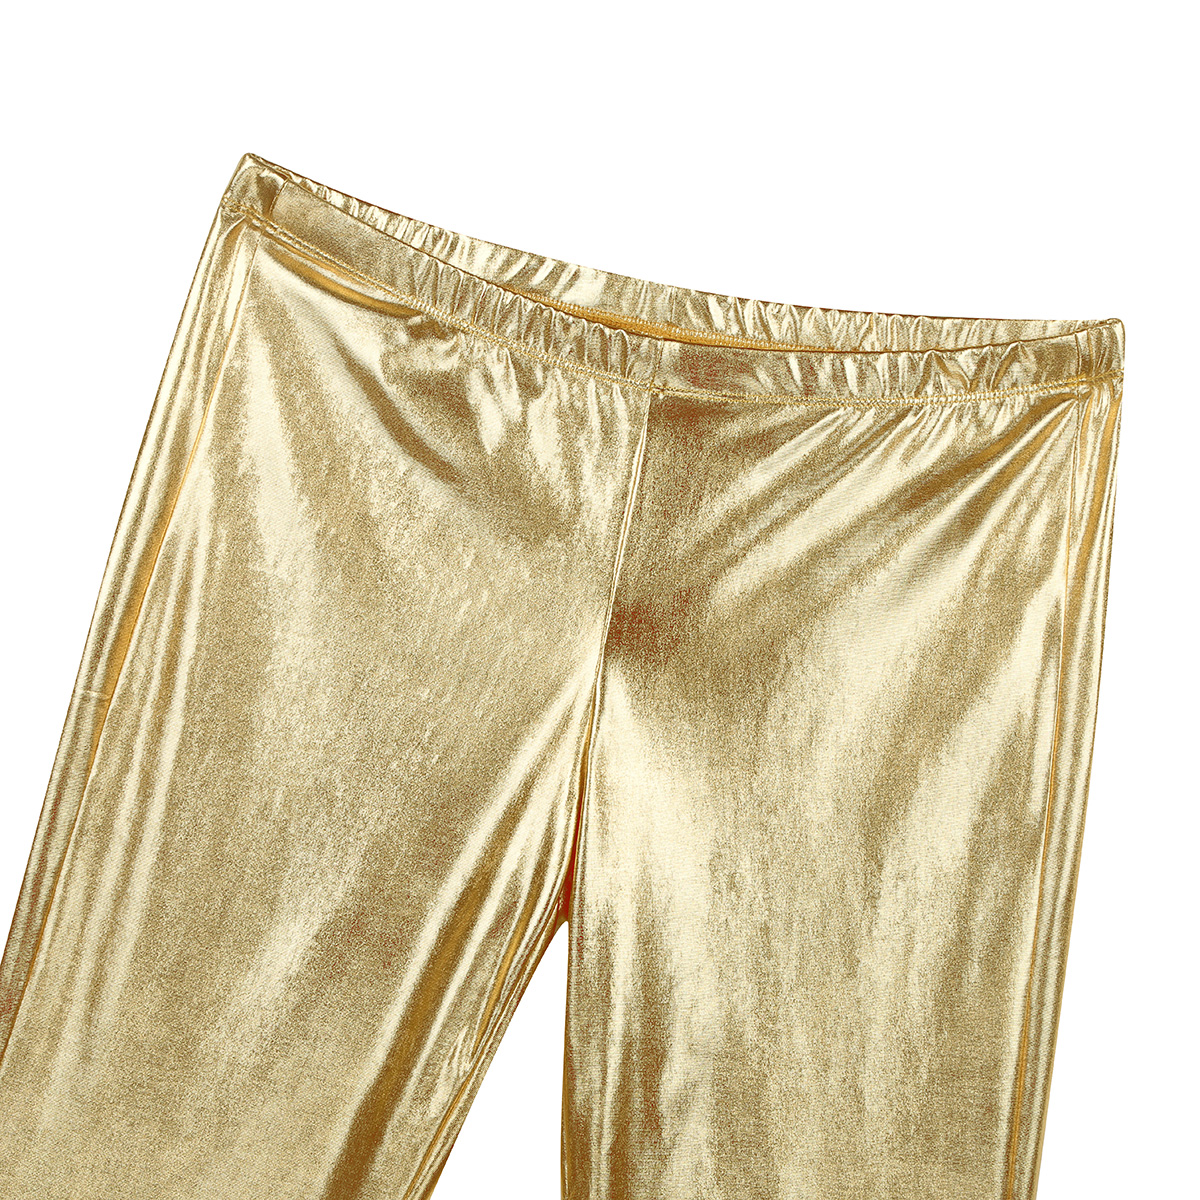 ChicTry Adults Mens Shiny Metallic Disco Pants with Bell Bottom Flared Long Pants Dude Costume Trousers for 70's Theme Parties 44